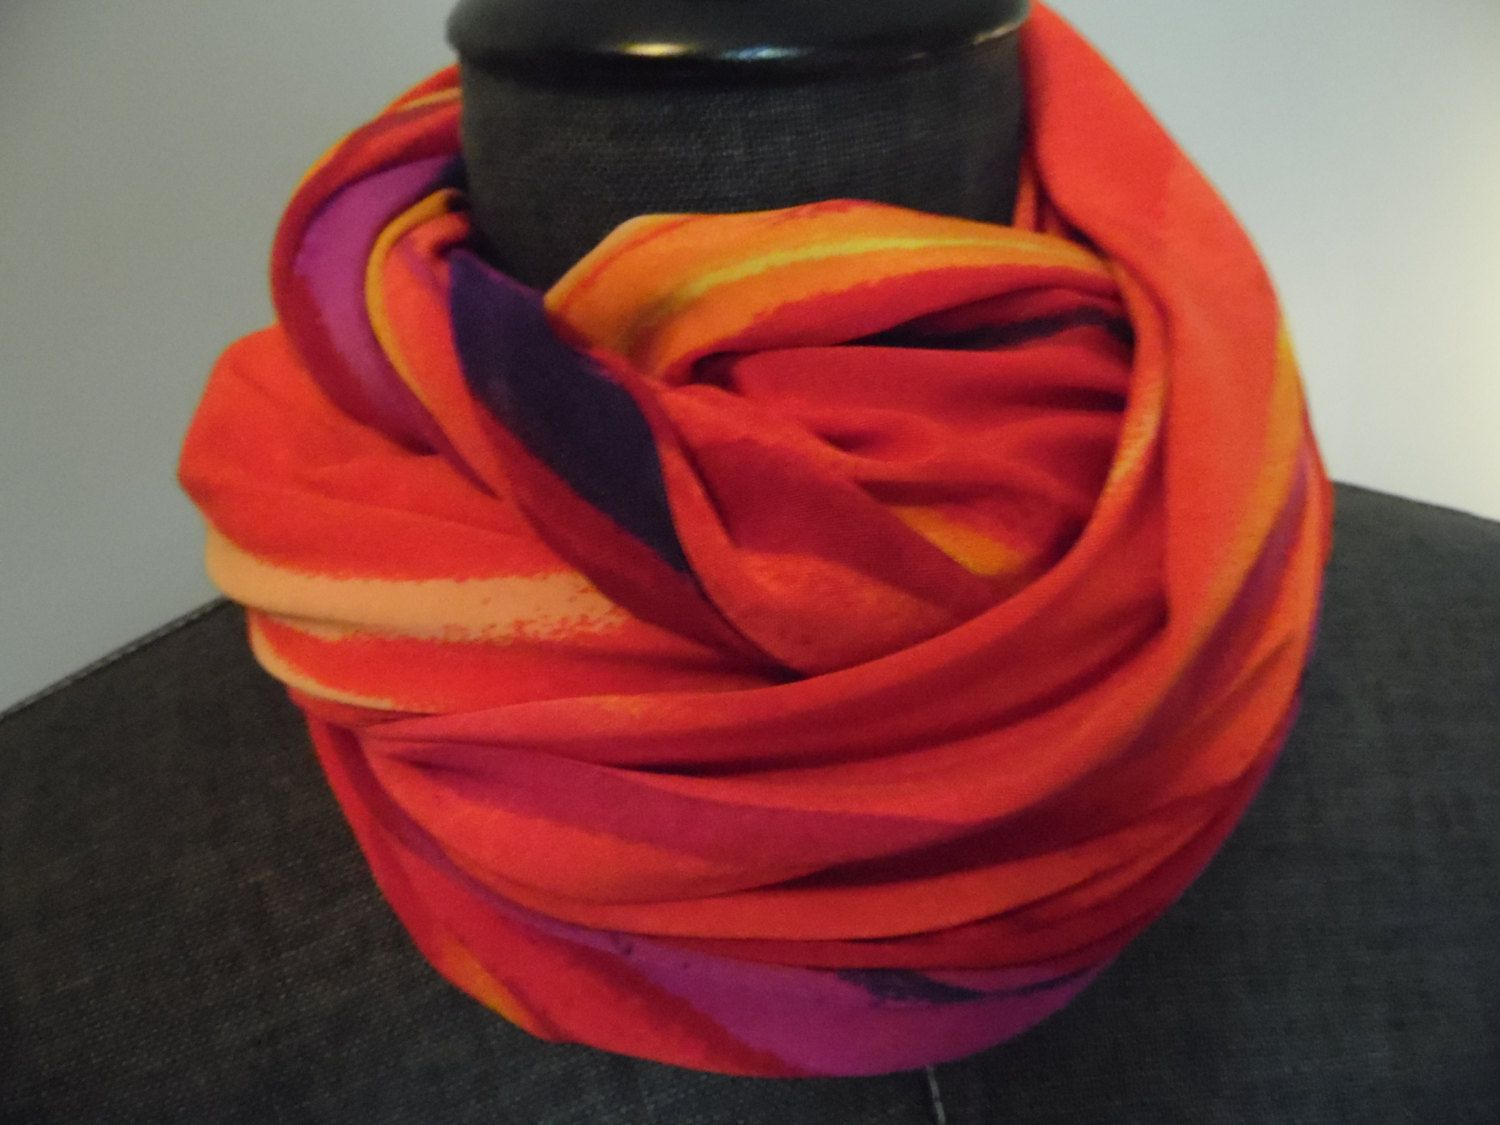 b5b26be7b5ea ITY Fire Red Multi Jersey Knit.Infinity Scarf Deep  Purple.Red.Yellow Gold.Lavender.Orange.Spring.Summer.Office.Weekend.